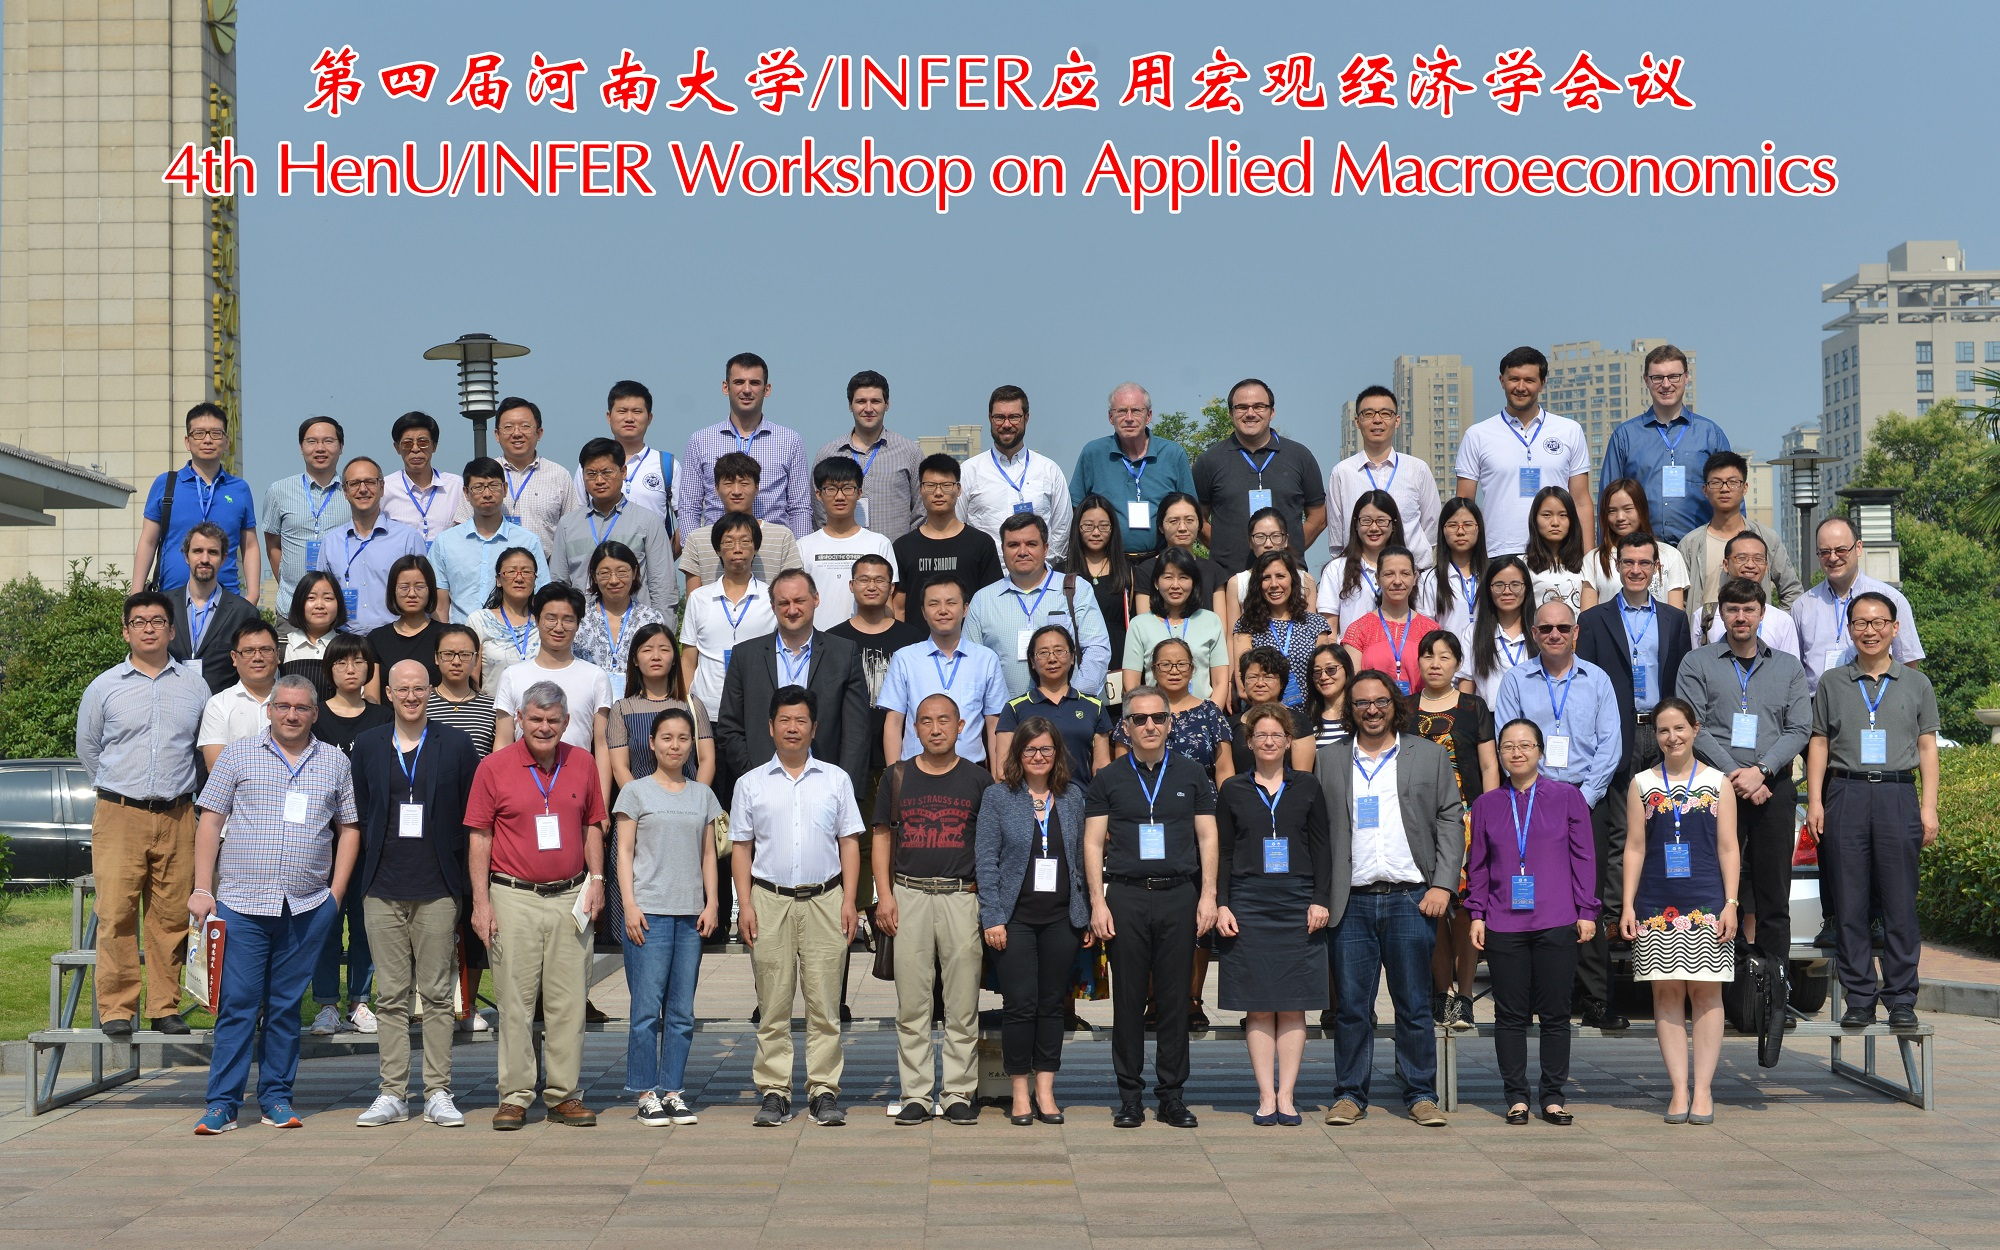 4th HenU/INFER Workshop on Applied Macroeconomics